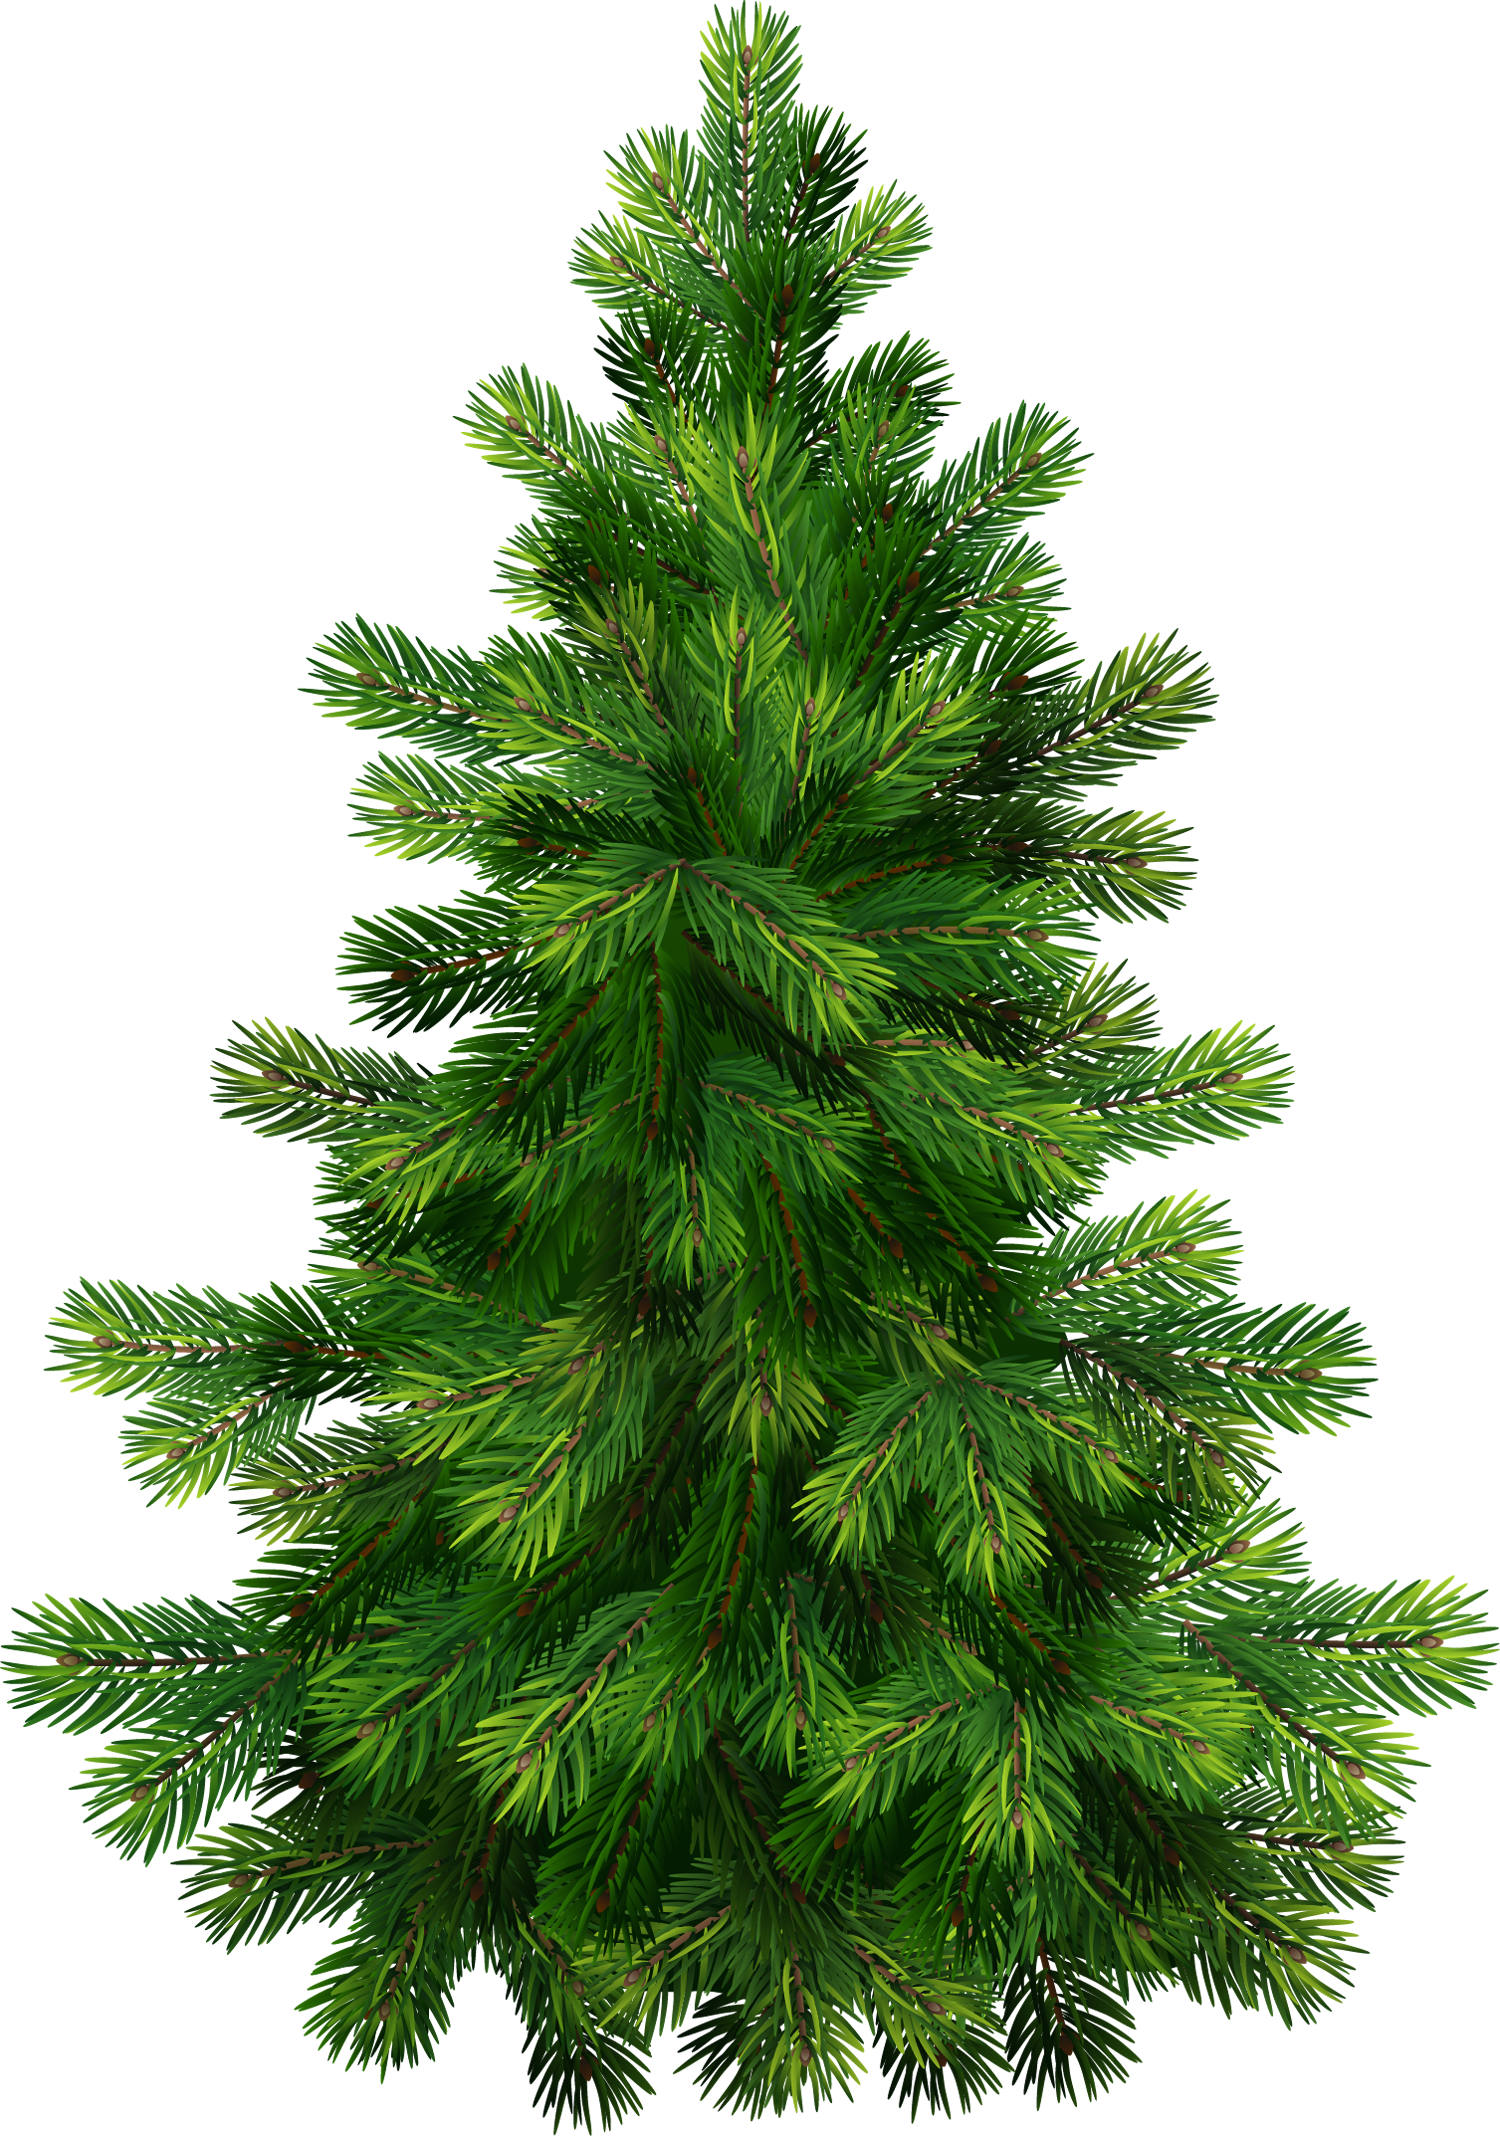 Pine clipart #15